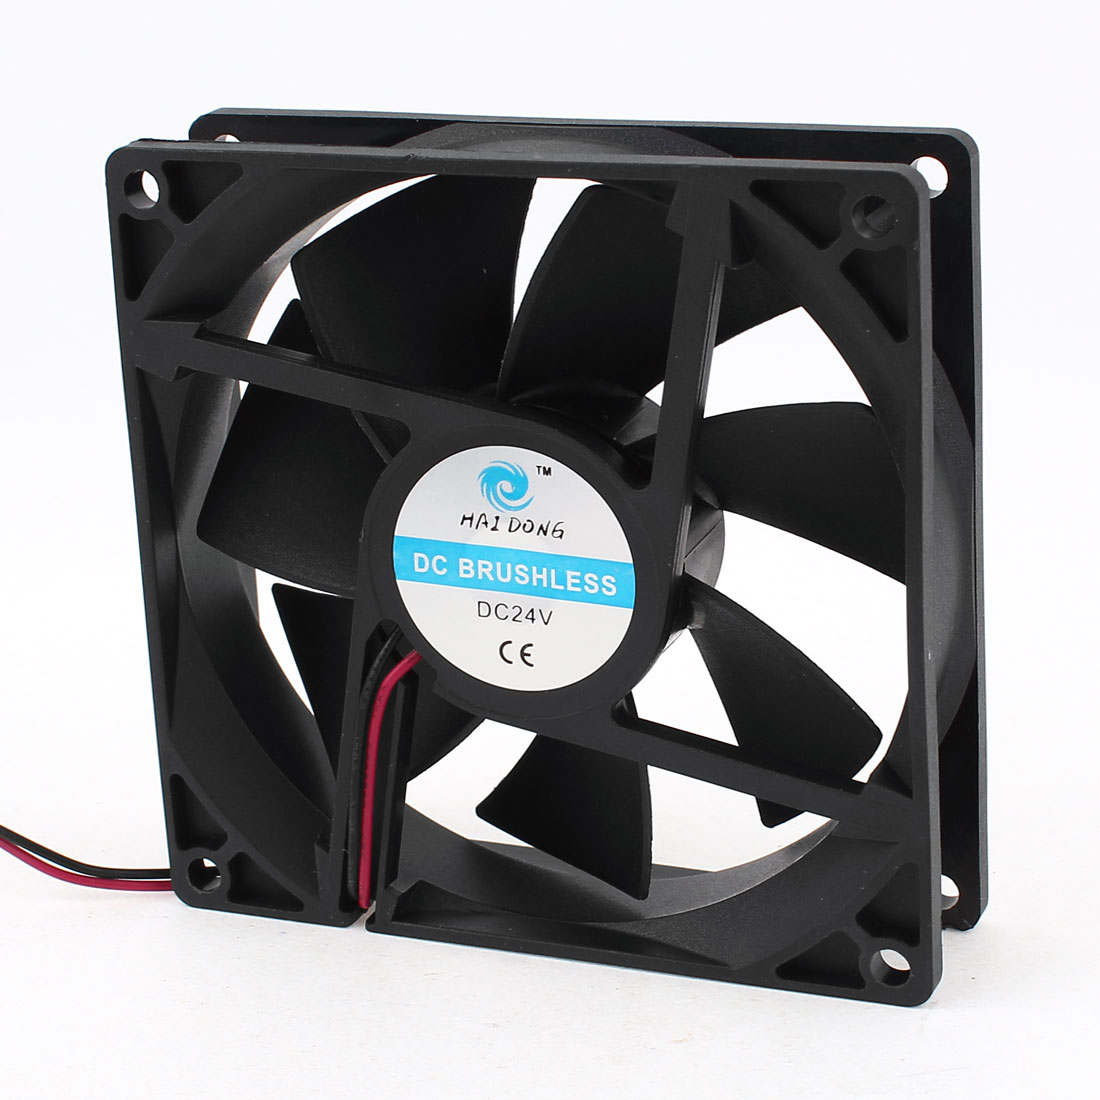 MF-D9025 90x90x25mm Brushless Cooling Fan DC 24V for Computer Case CPU Cooler